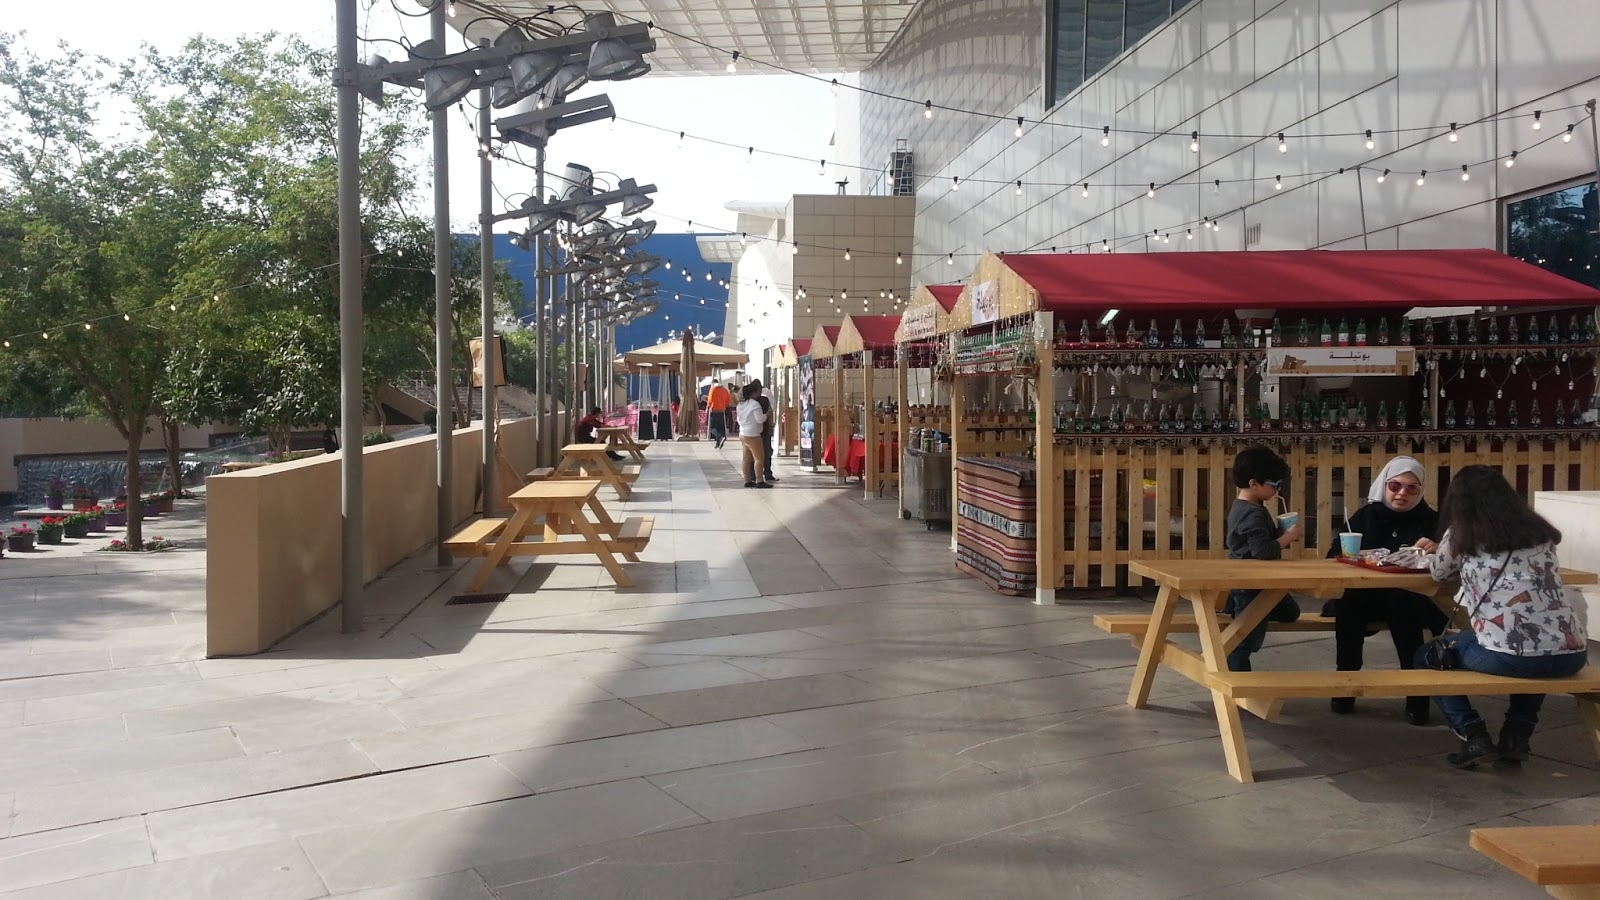 Kuweight 64 enjoy the outdoor food market at avenues mall for Outdoor food market